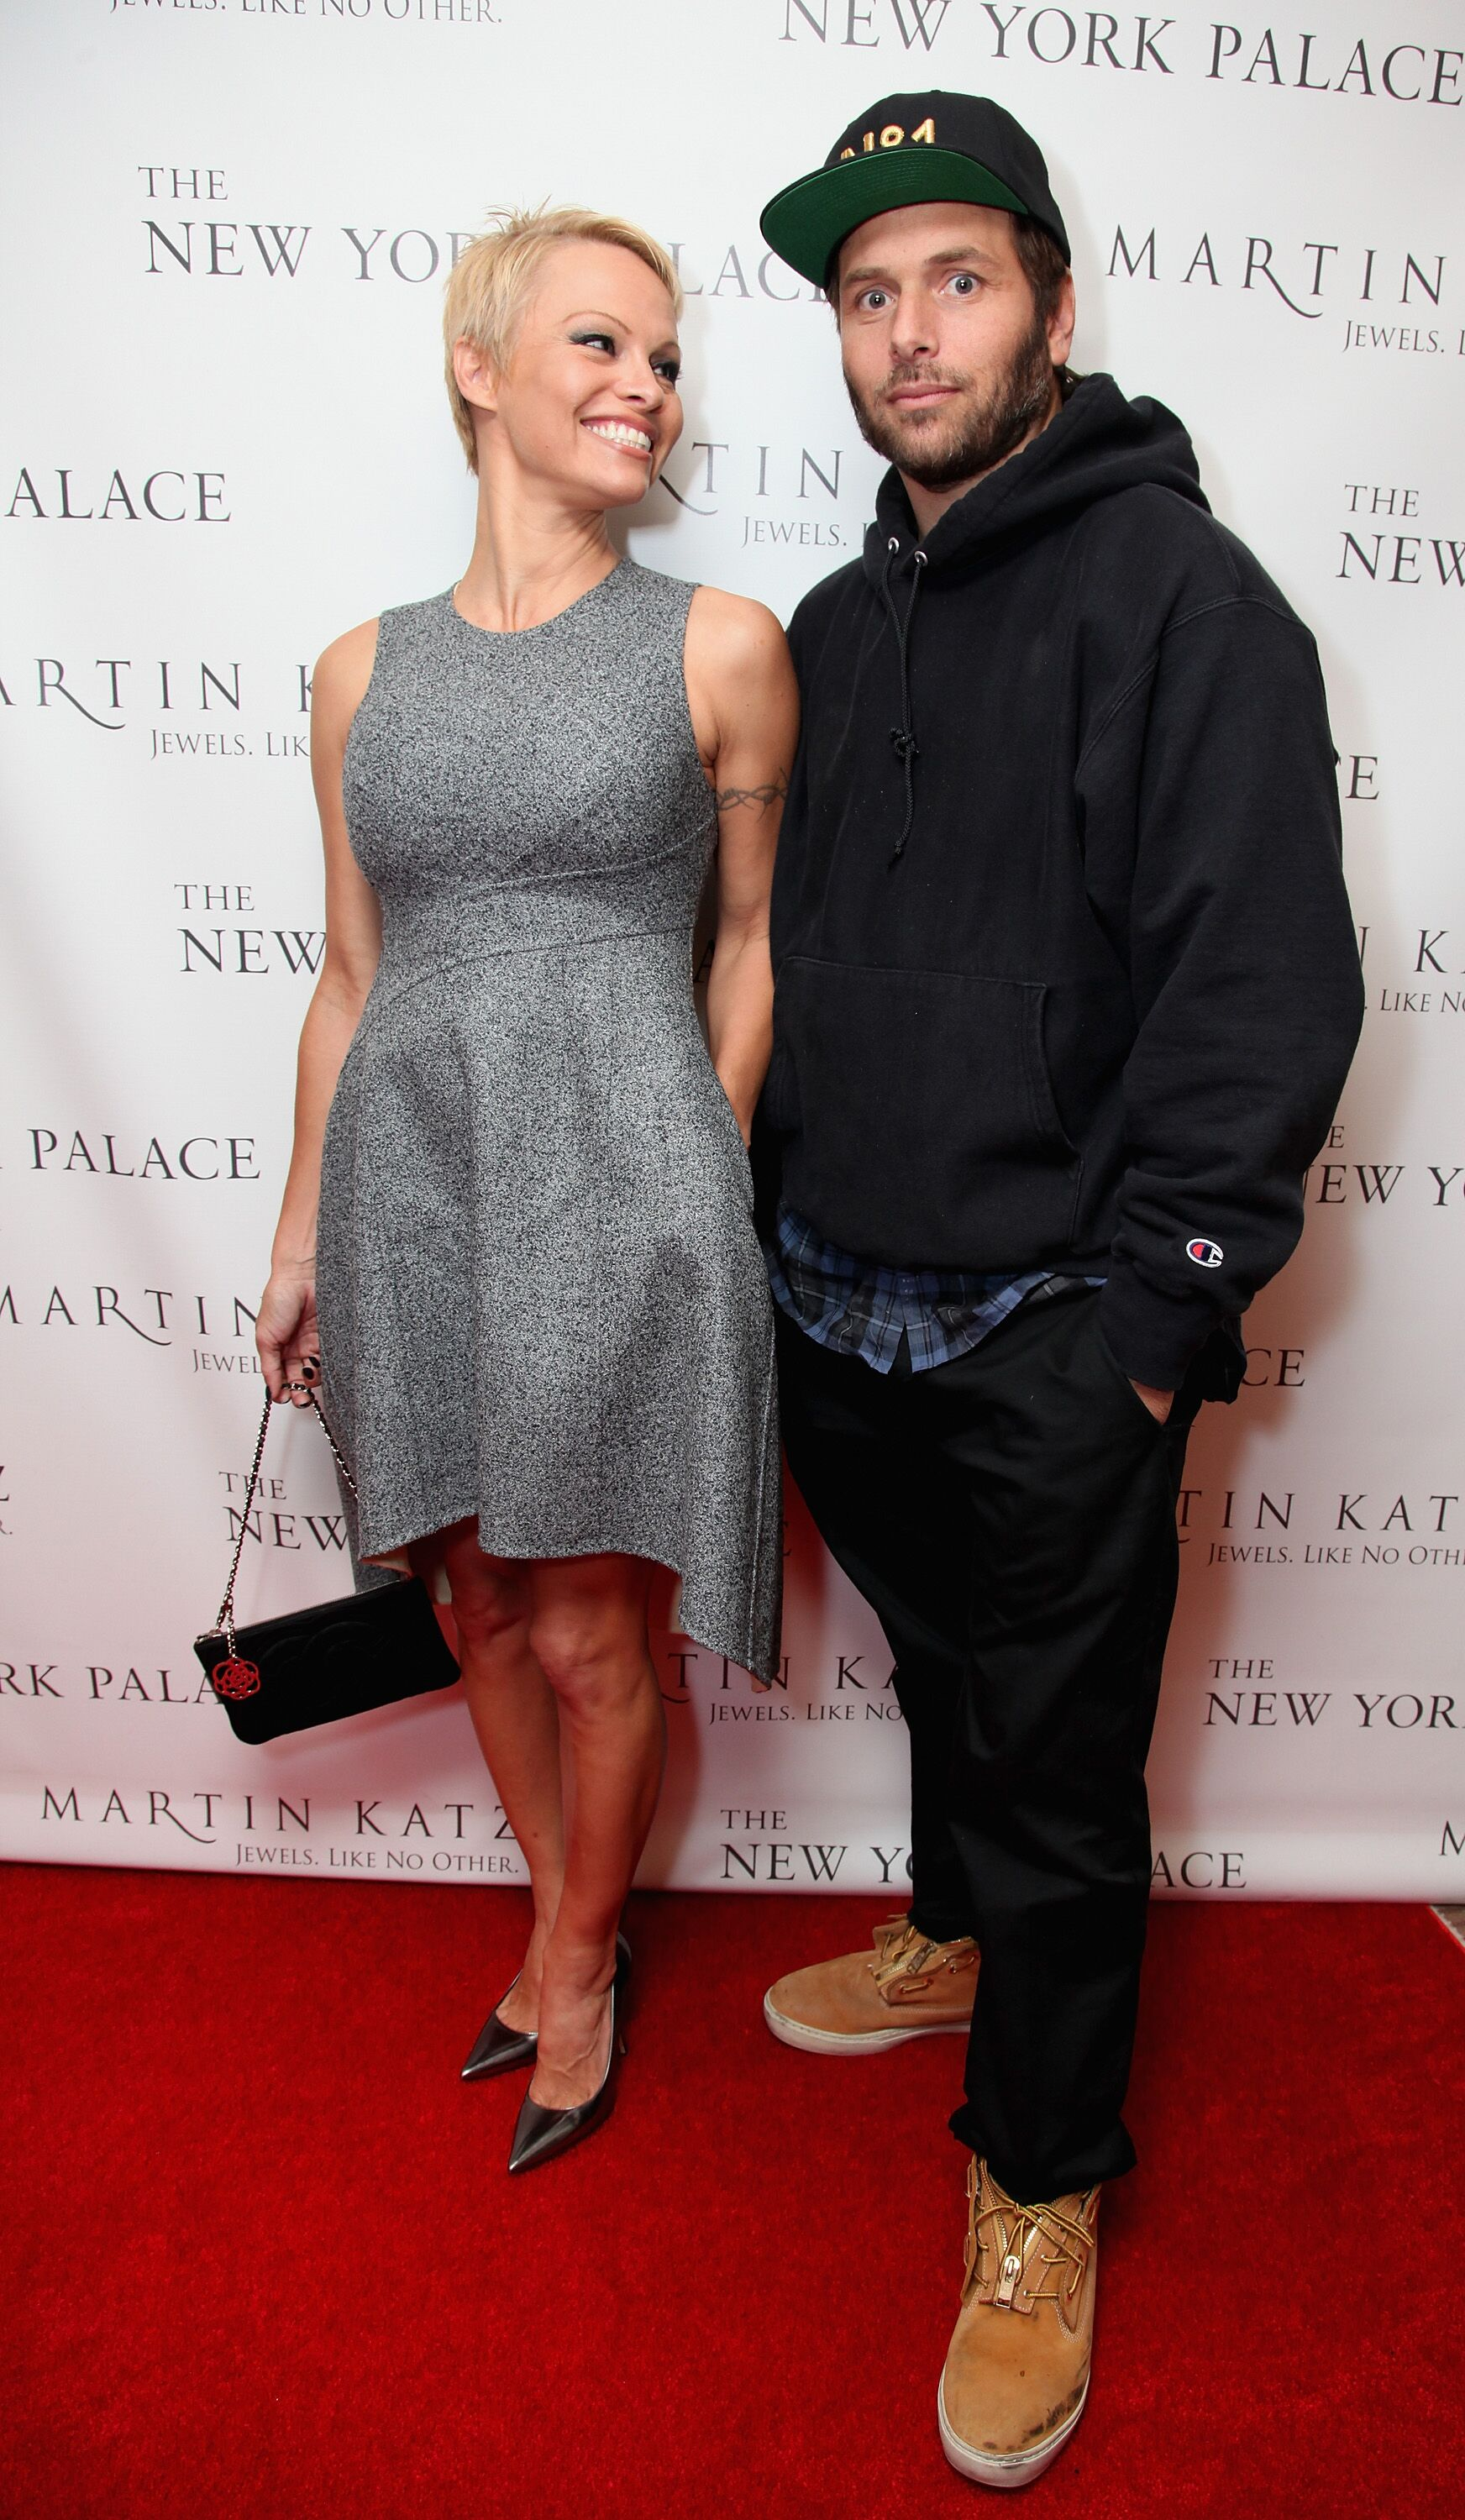 Pamela Anderson and Rick Salomon attend The Martin Katz Jewel Suite. | Source: Getty Images